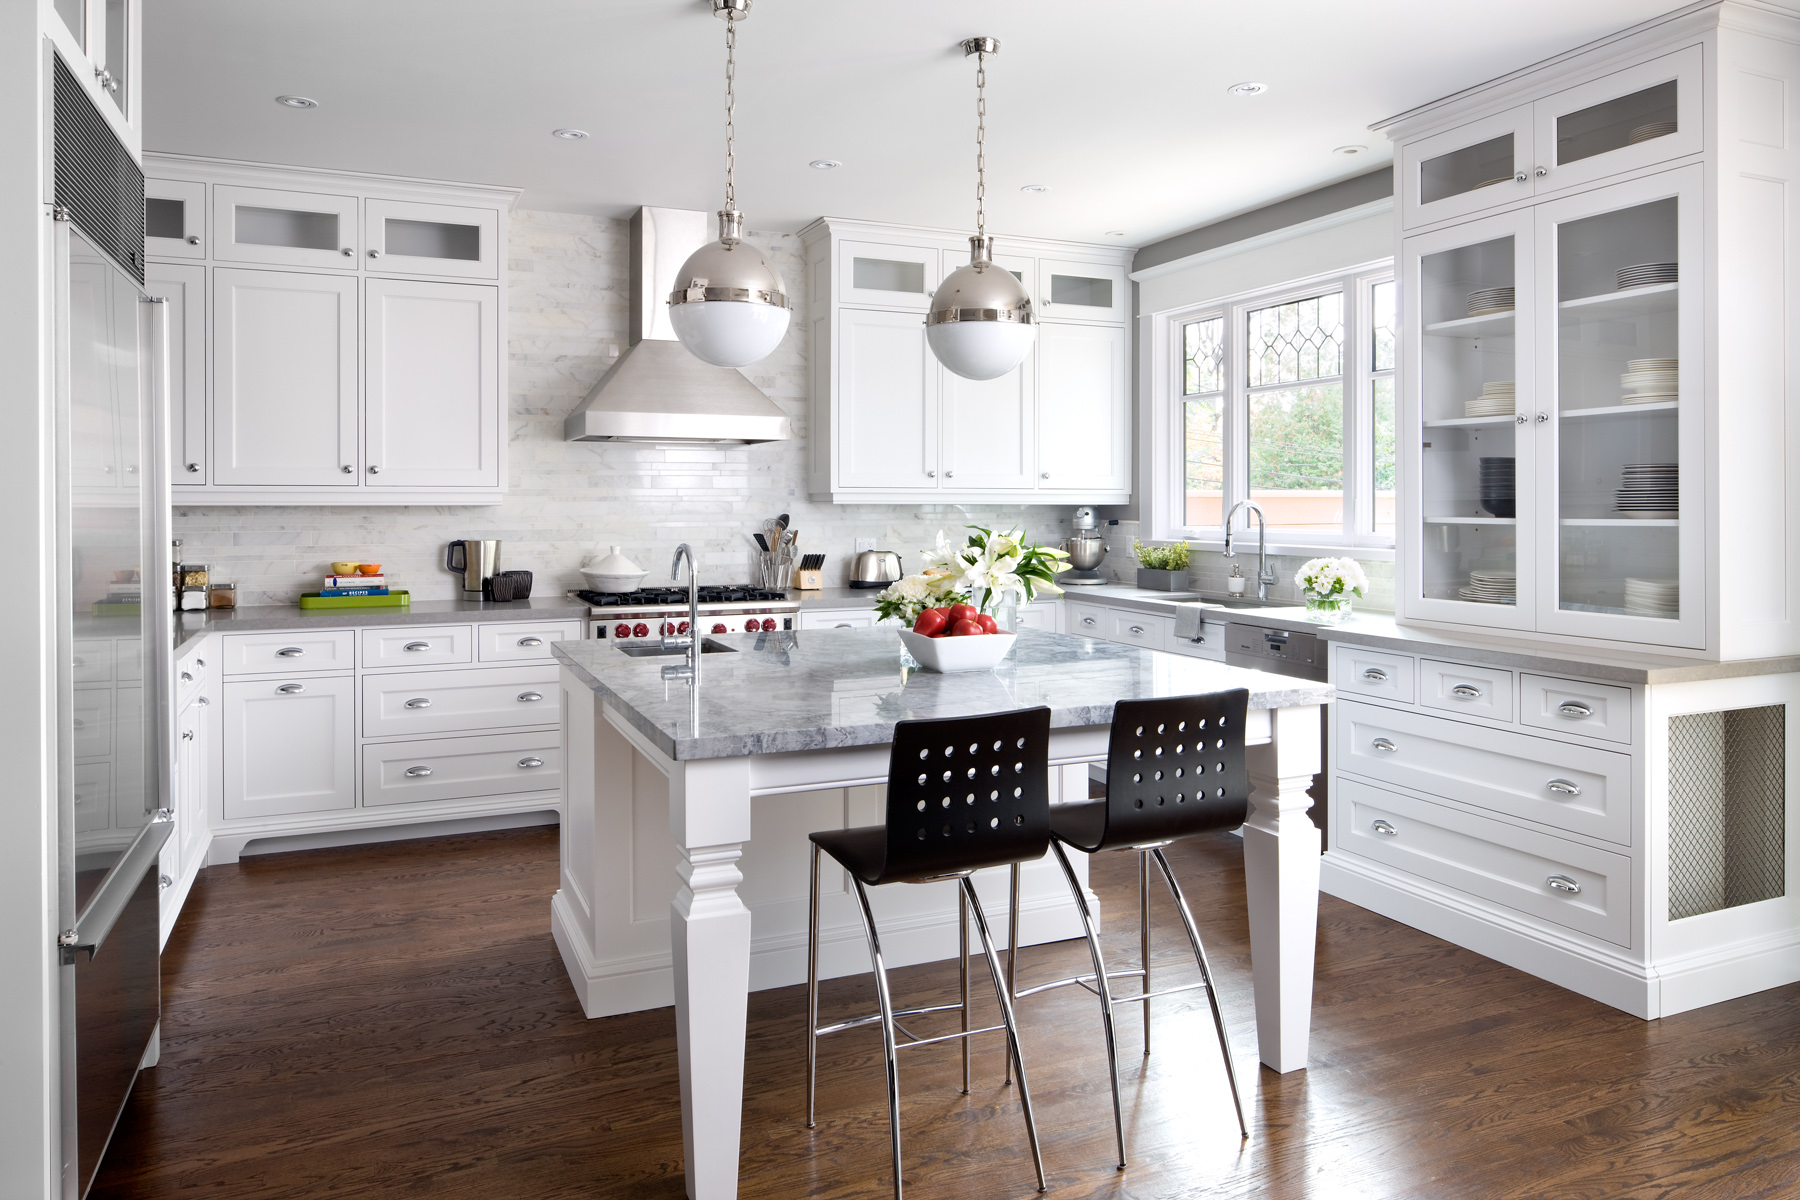 Oxford Kitchen Cabinets Home Depot Which White Is Right My Top Paint Picks For White Eieihome